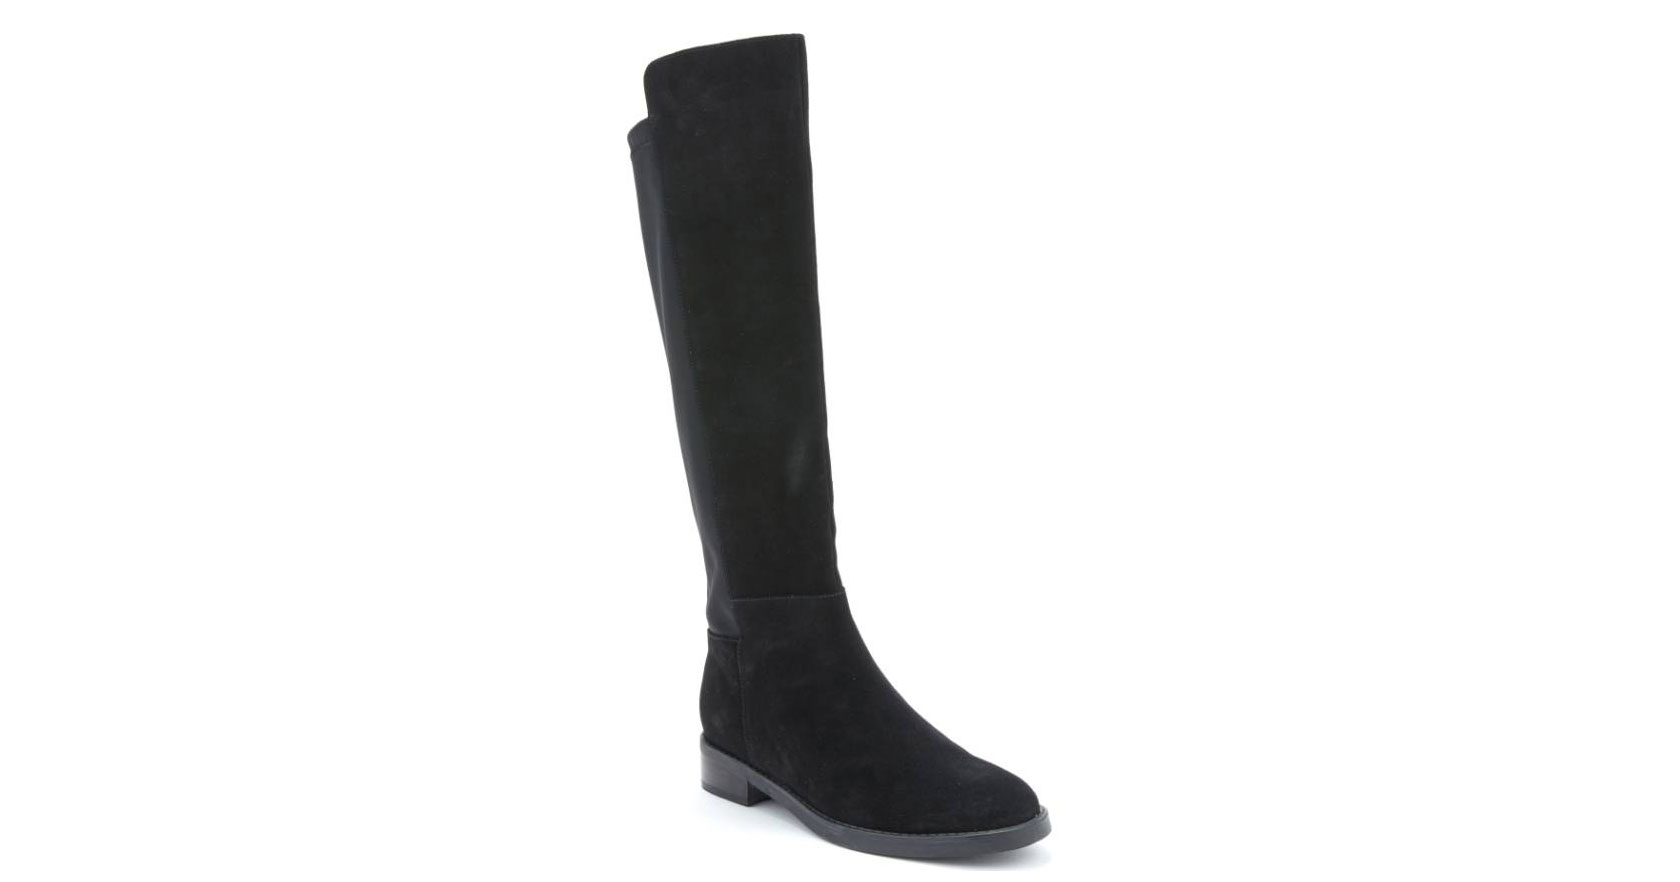 blondo-ellie-waterproof-knee-high-riding-boot